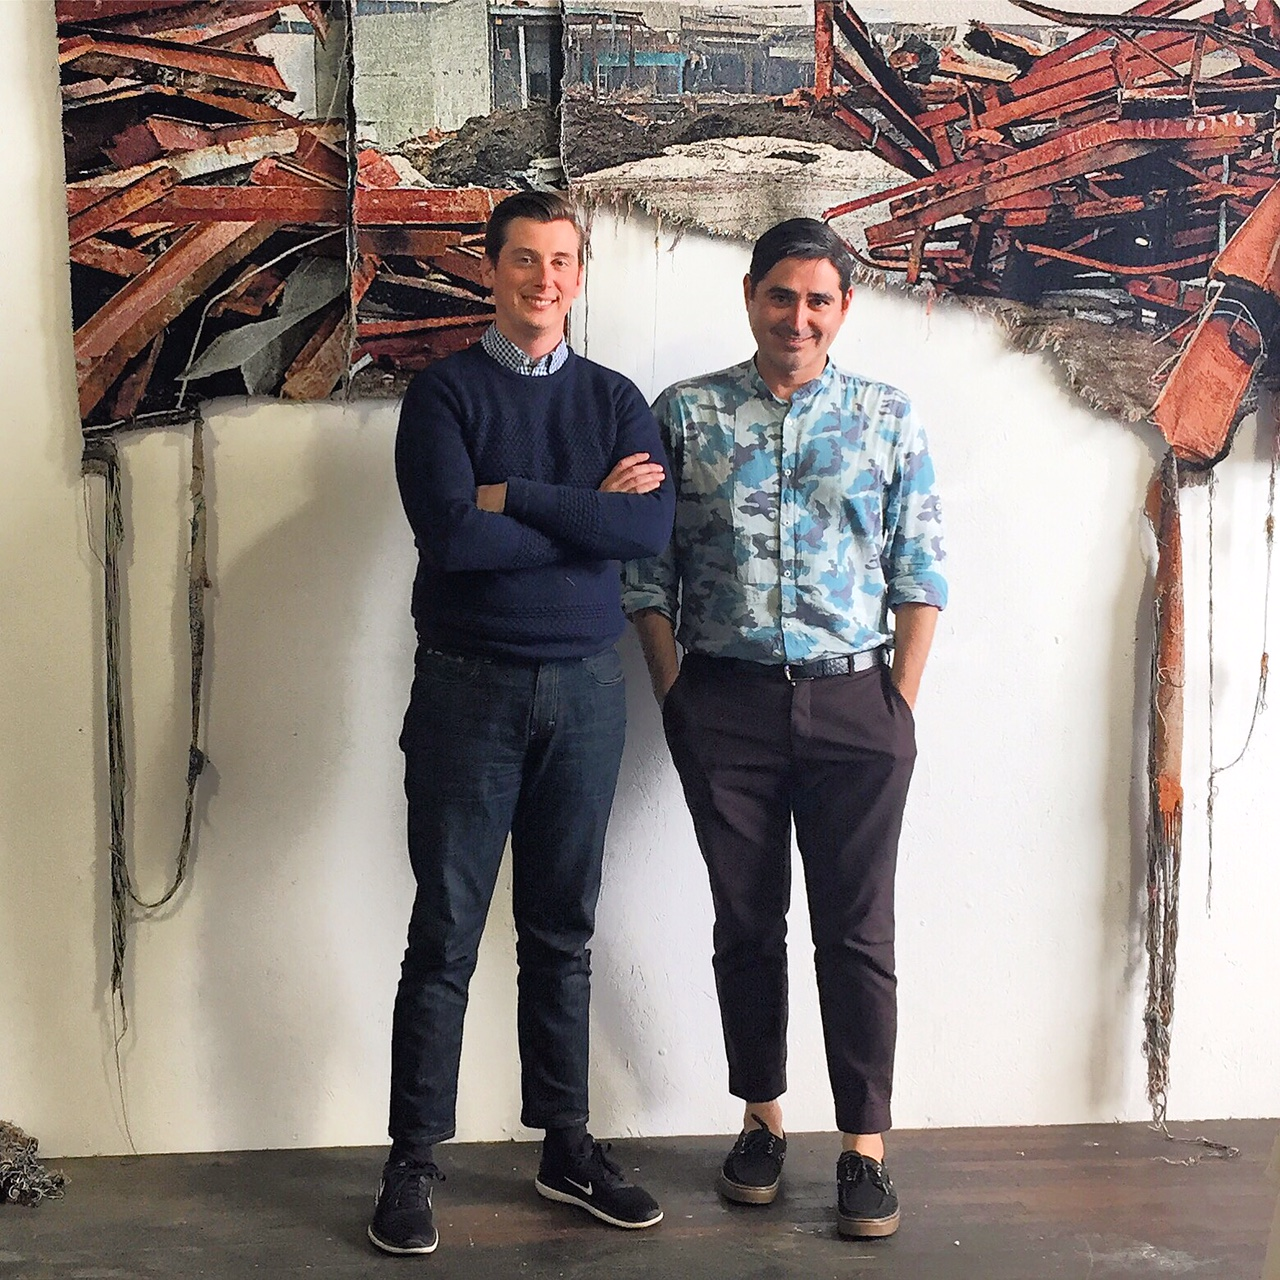 MOCA Cleveland's Visiting Curator Award Program   September 2017 awarded MOCA studio visit with Jose Carlos Diaz, Chief Curator at The Andy Warhol Museum and MOCA Curator, Will Brown.   https://www.mocacleveland.org/programs/visiting-curator